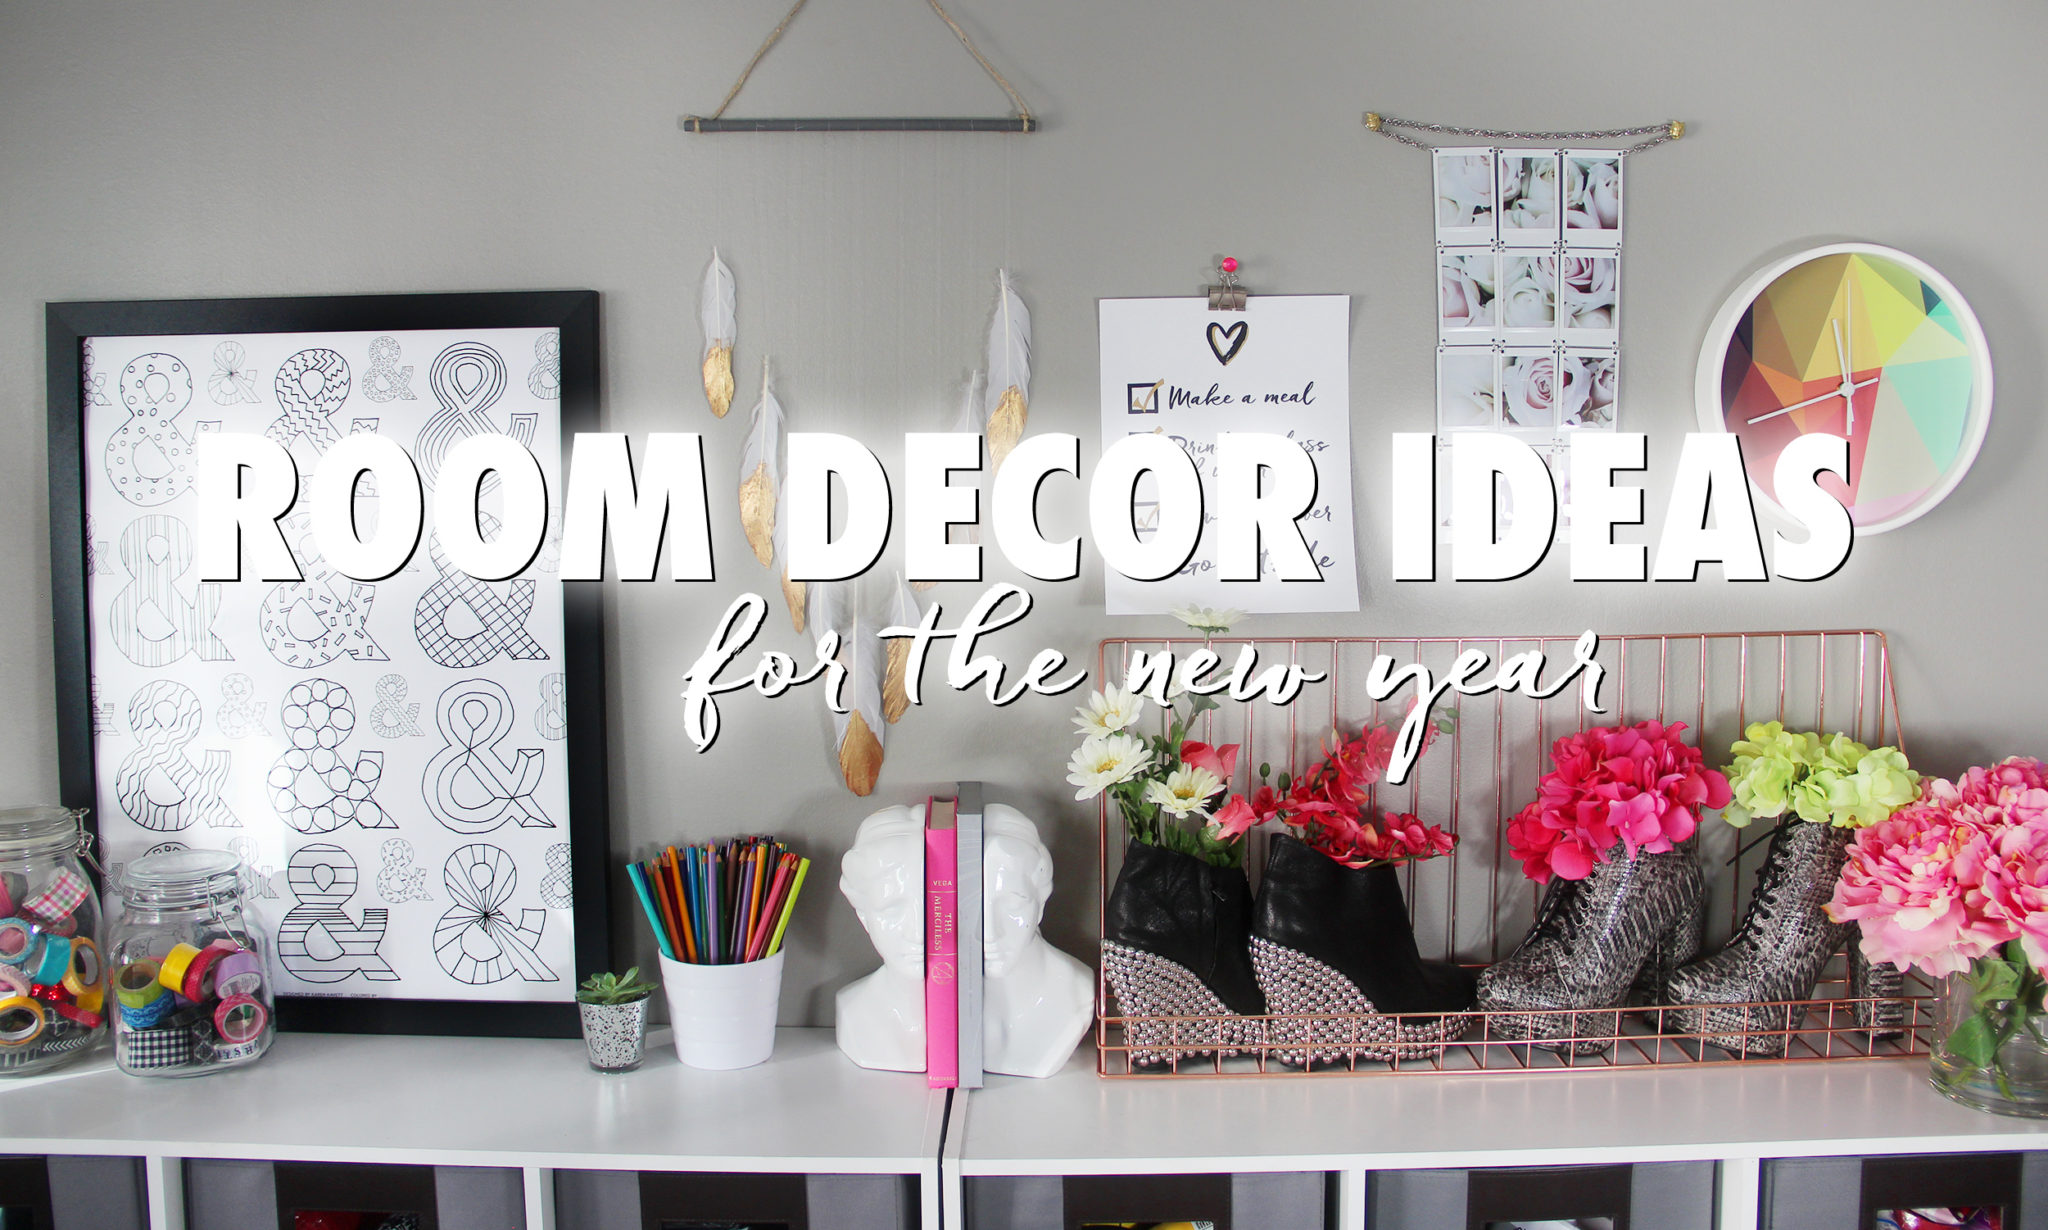 3 room decor ideas for 2016 free printable motivational poster